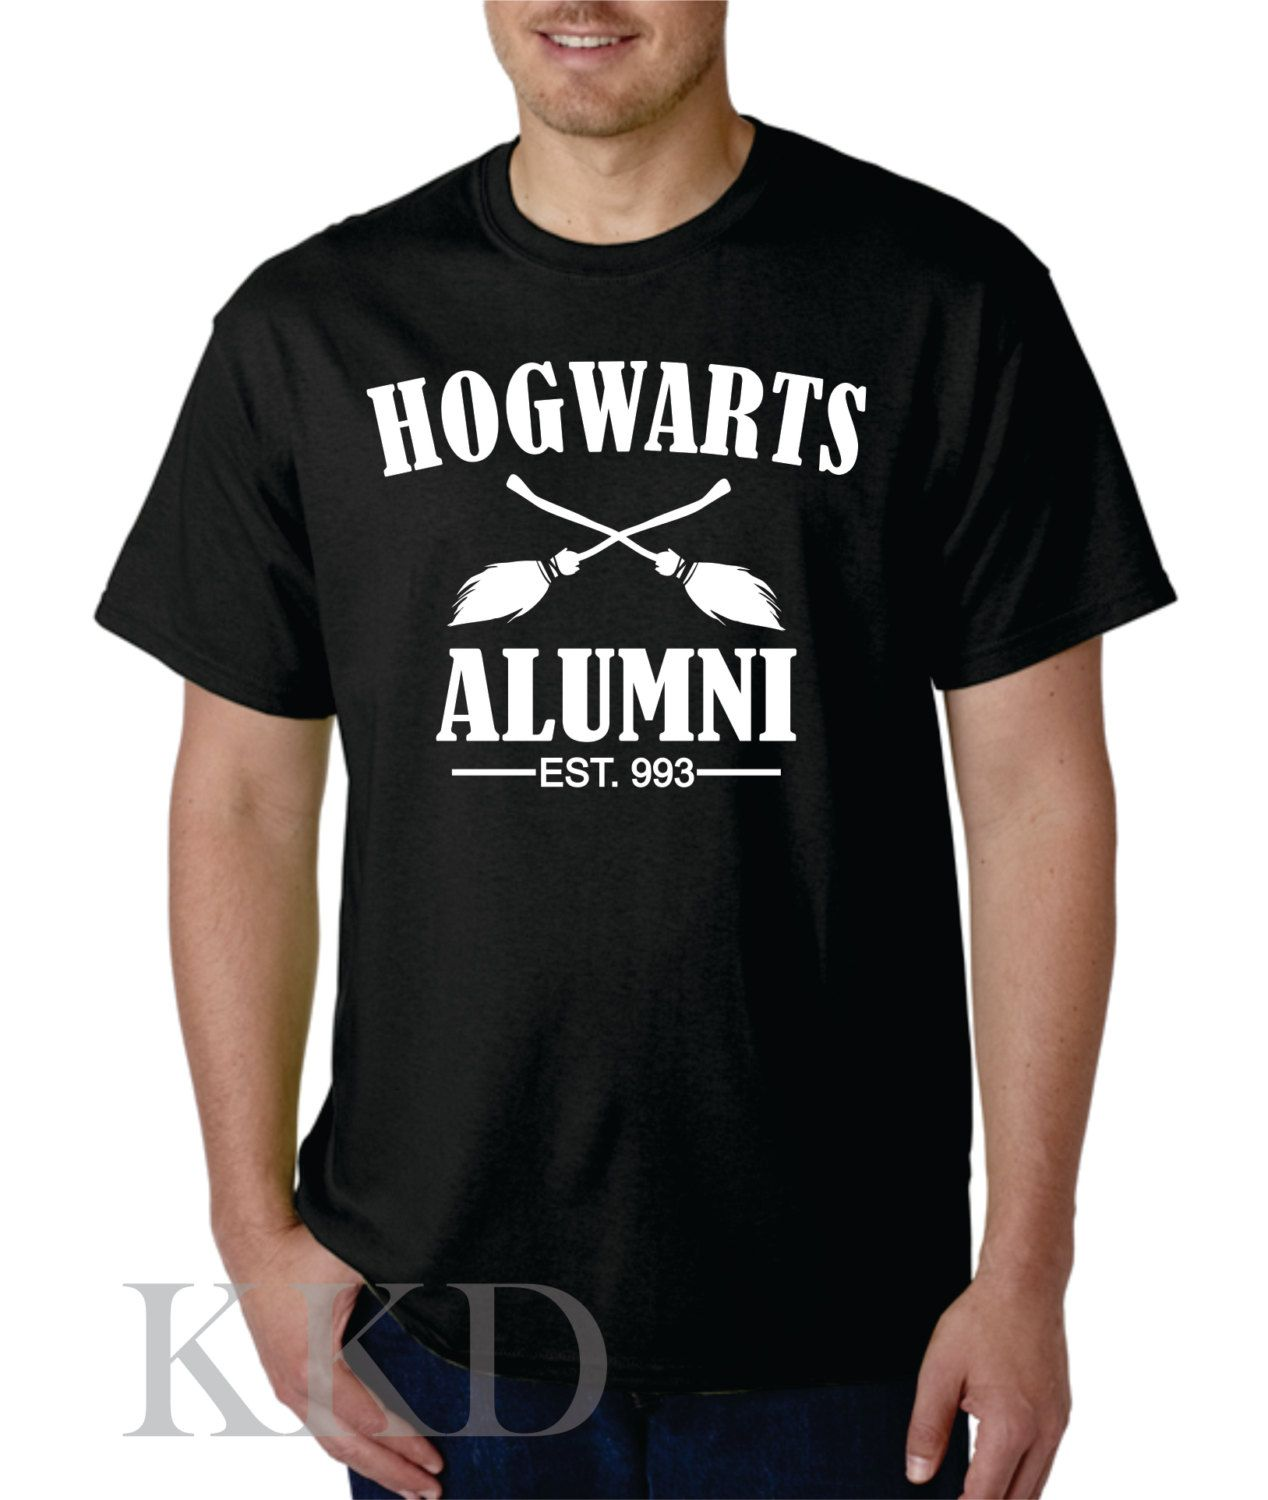 Harry Potter - Hogwarts Alumni Tee by KKDcustomized on Etsy